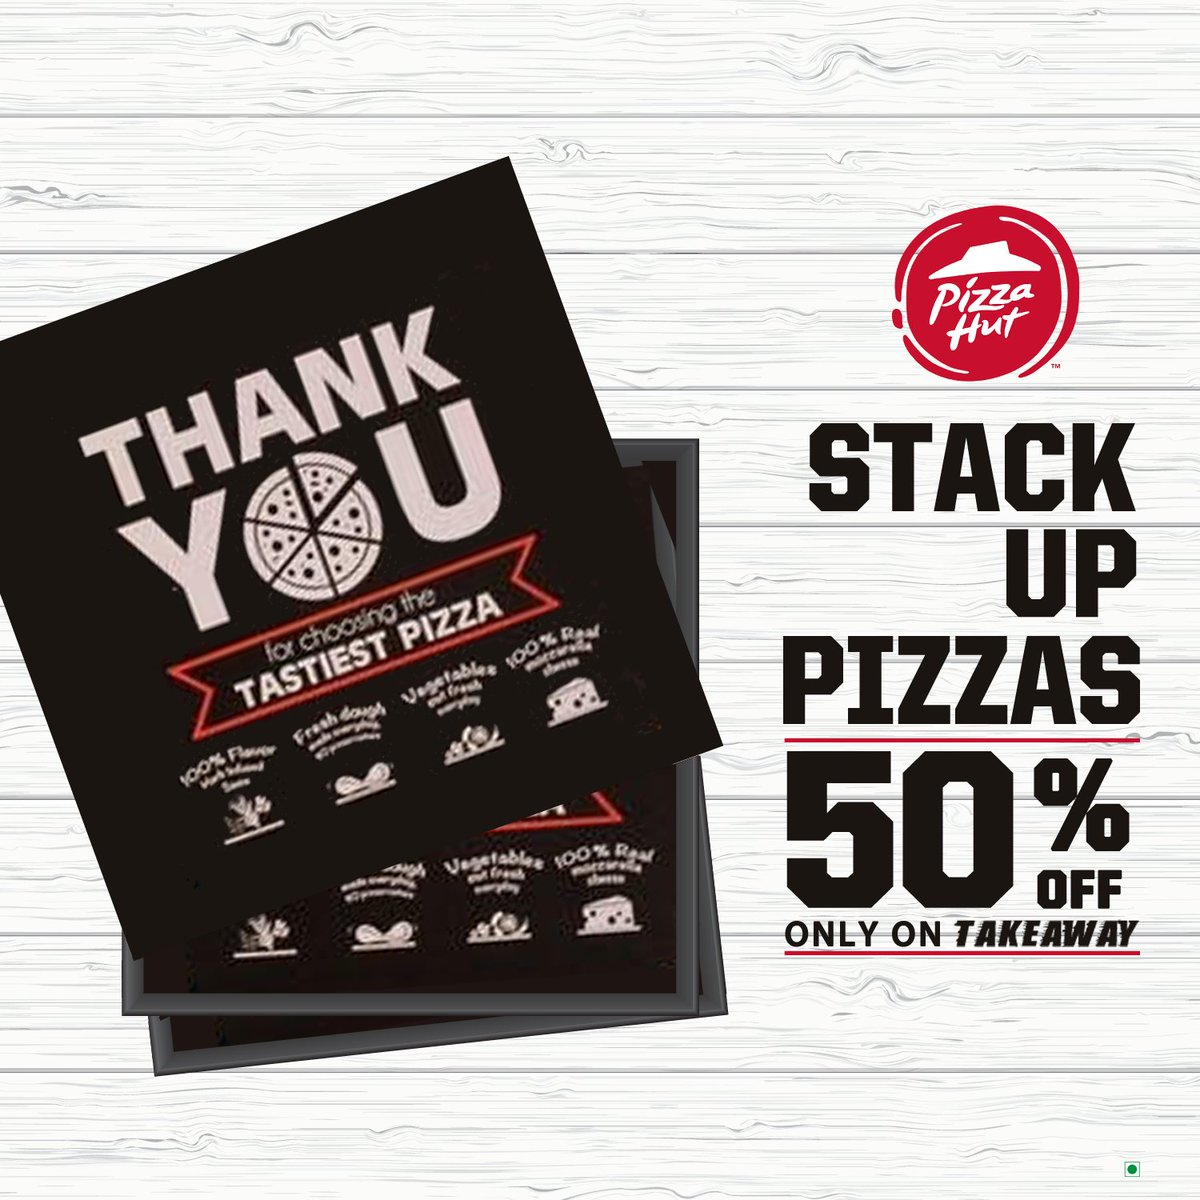 When a take away option is so wowsome, why would you not have your favourite pizzas ThatsSoWOW https t.co 9Tc6vIJl7h